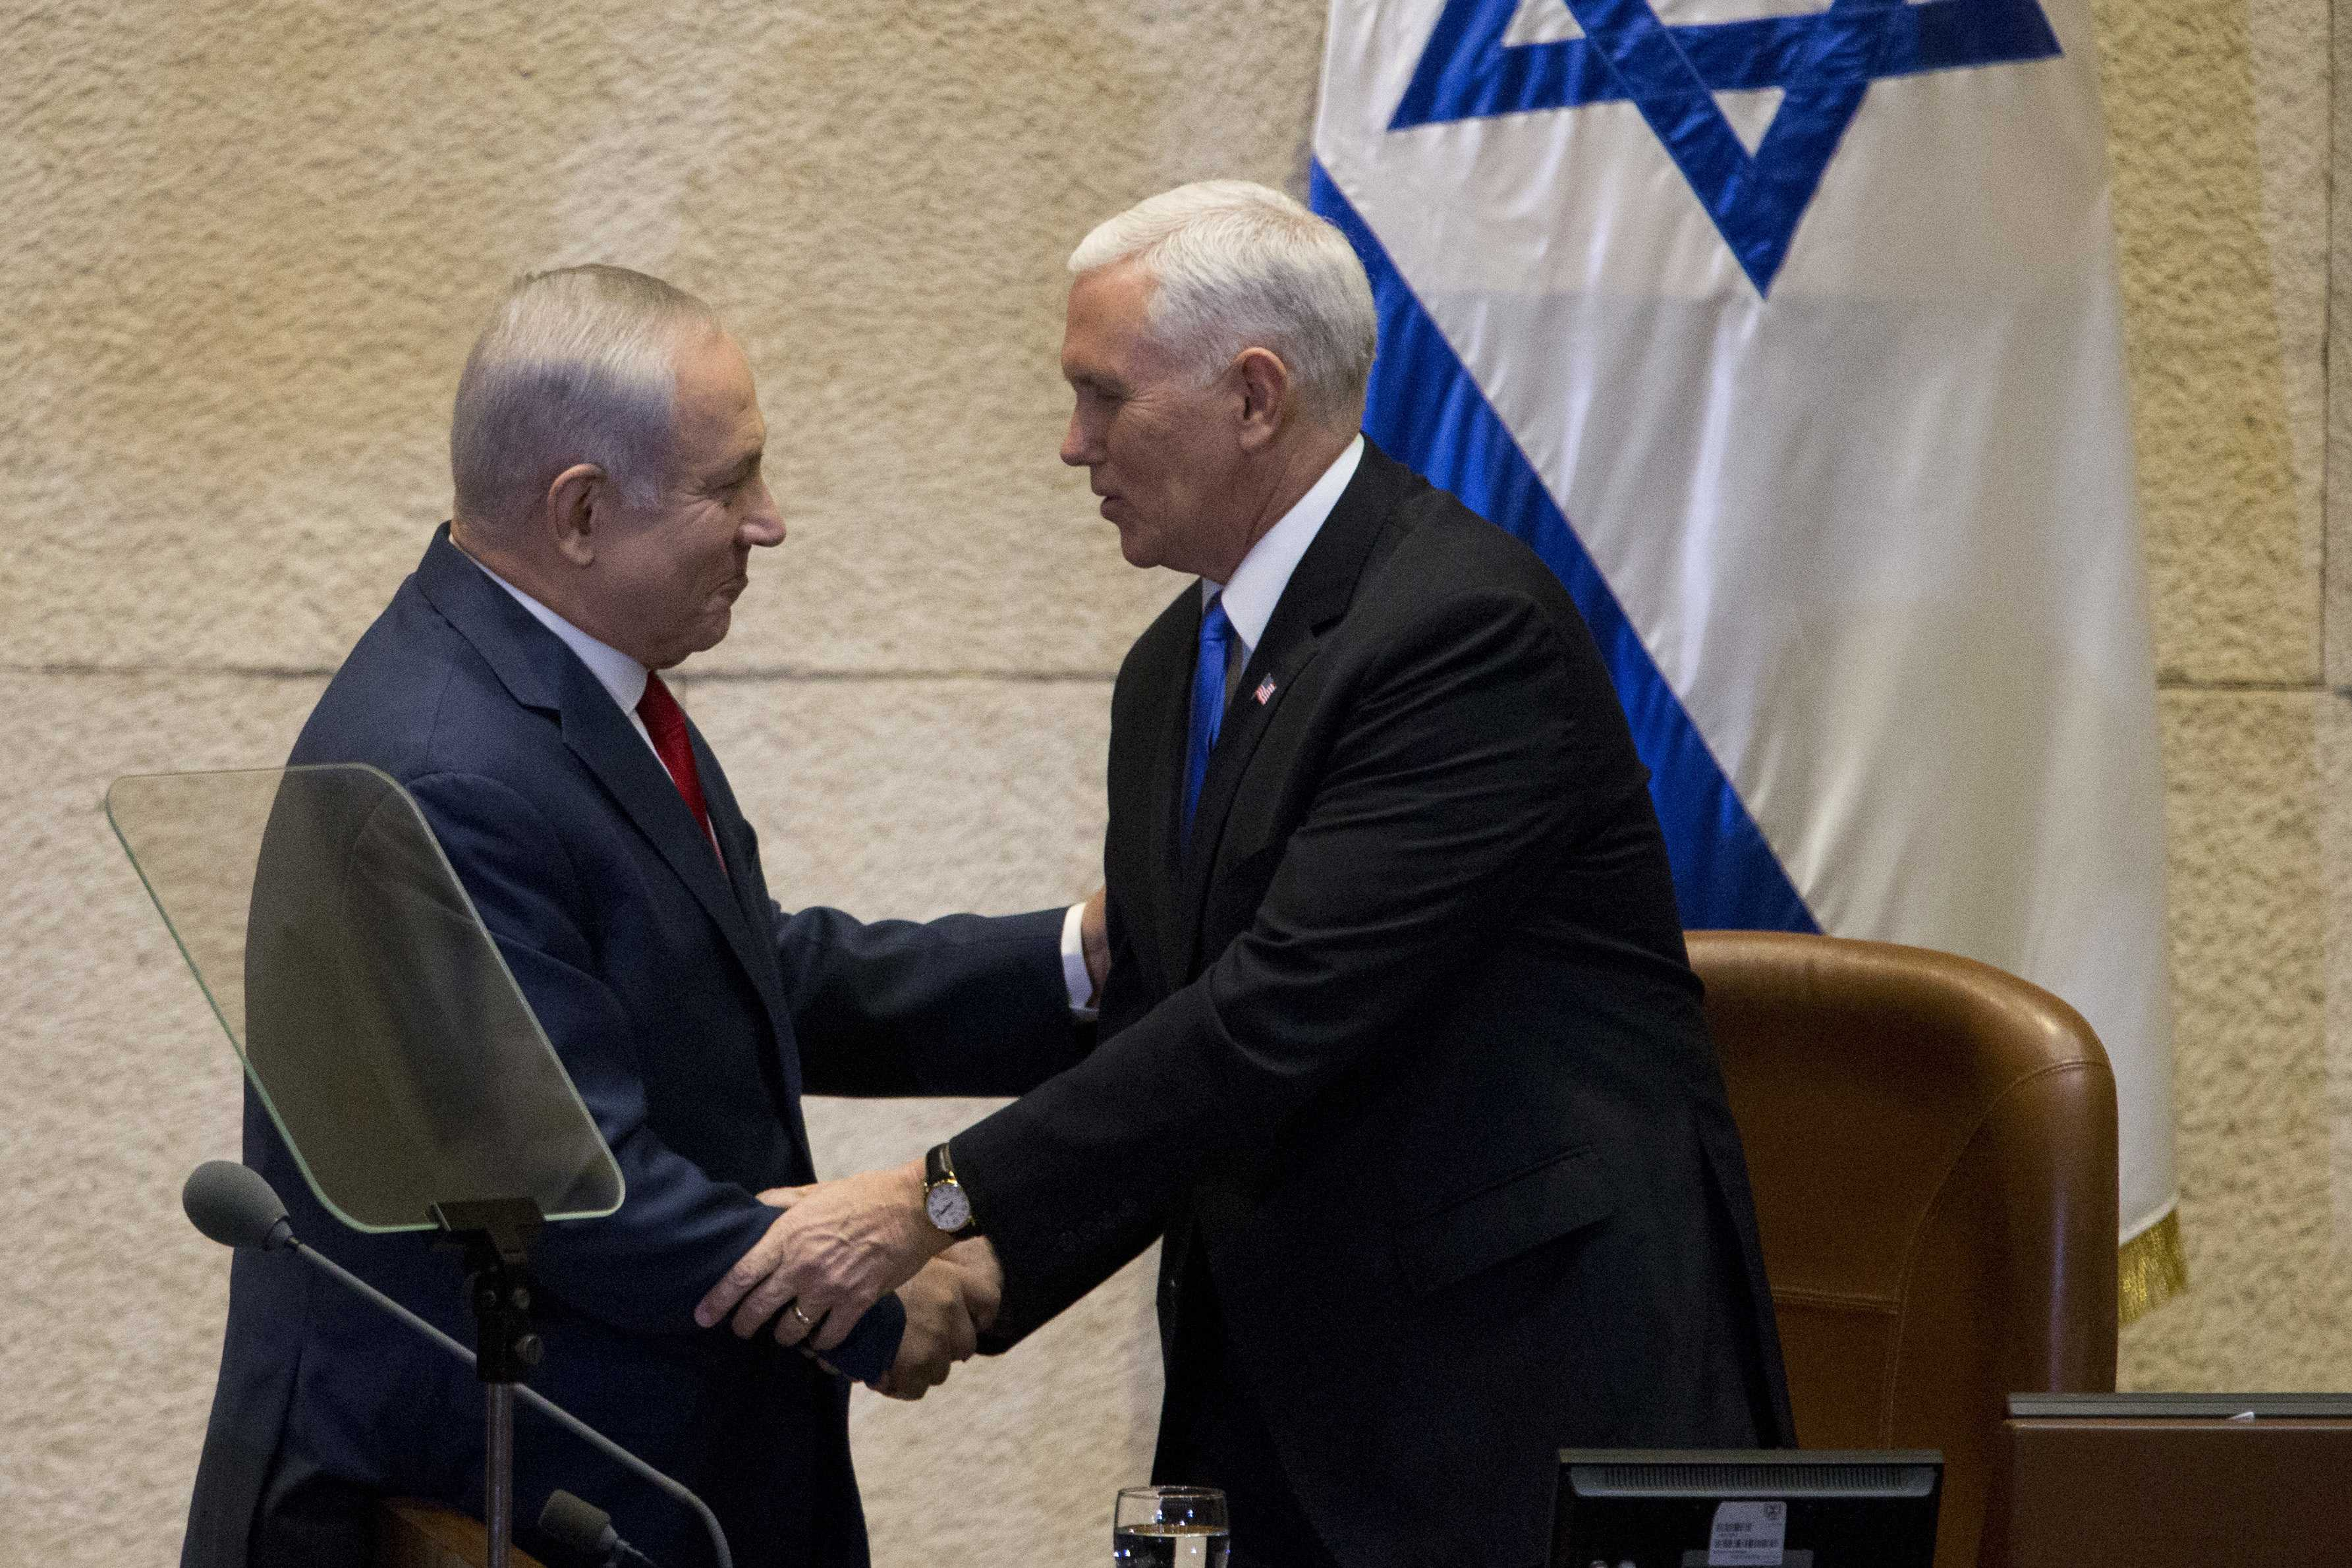 US Vice President Mike Pence arrives in Israel, heads to Jerusalem